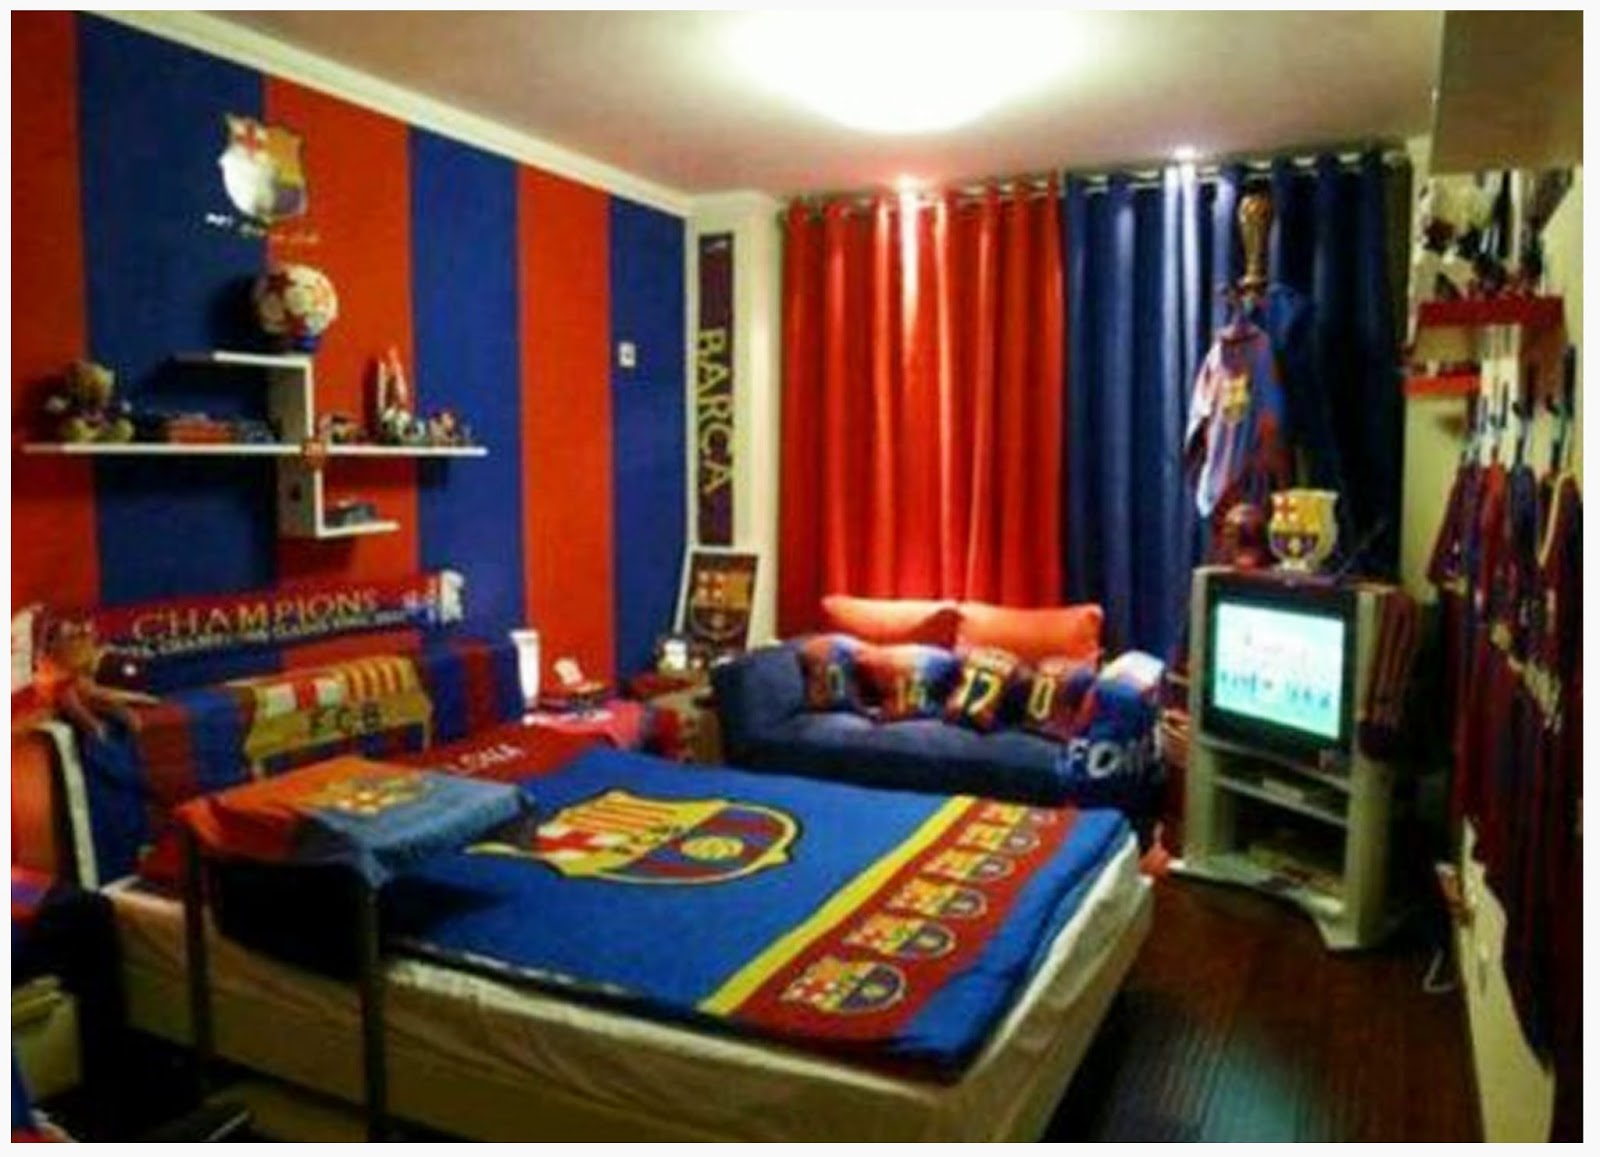 Bedroom Decoration Cool Boys Bedroom Decoration With Fc Barcelona Theme